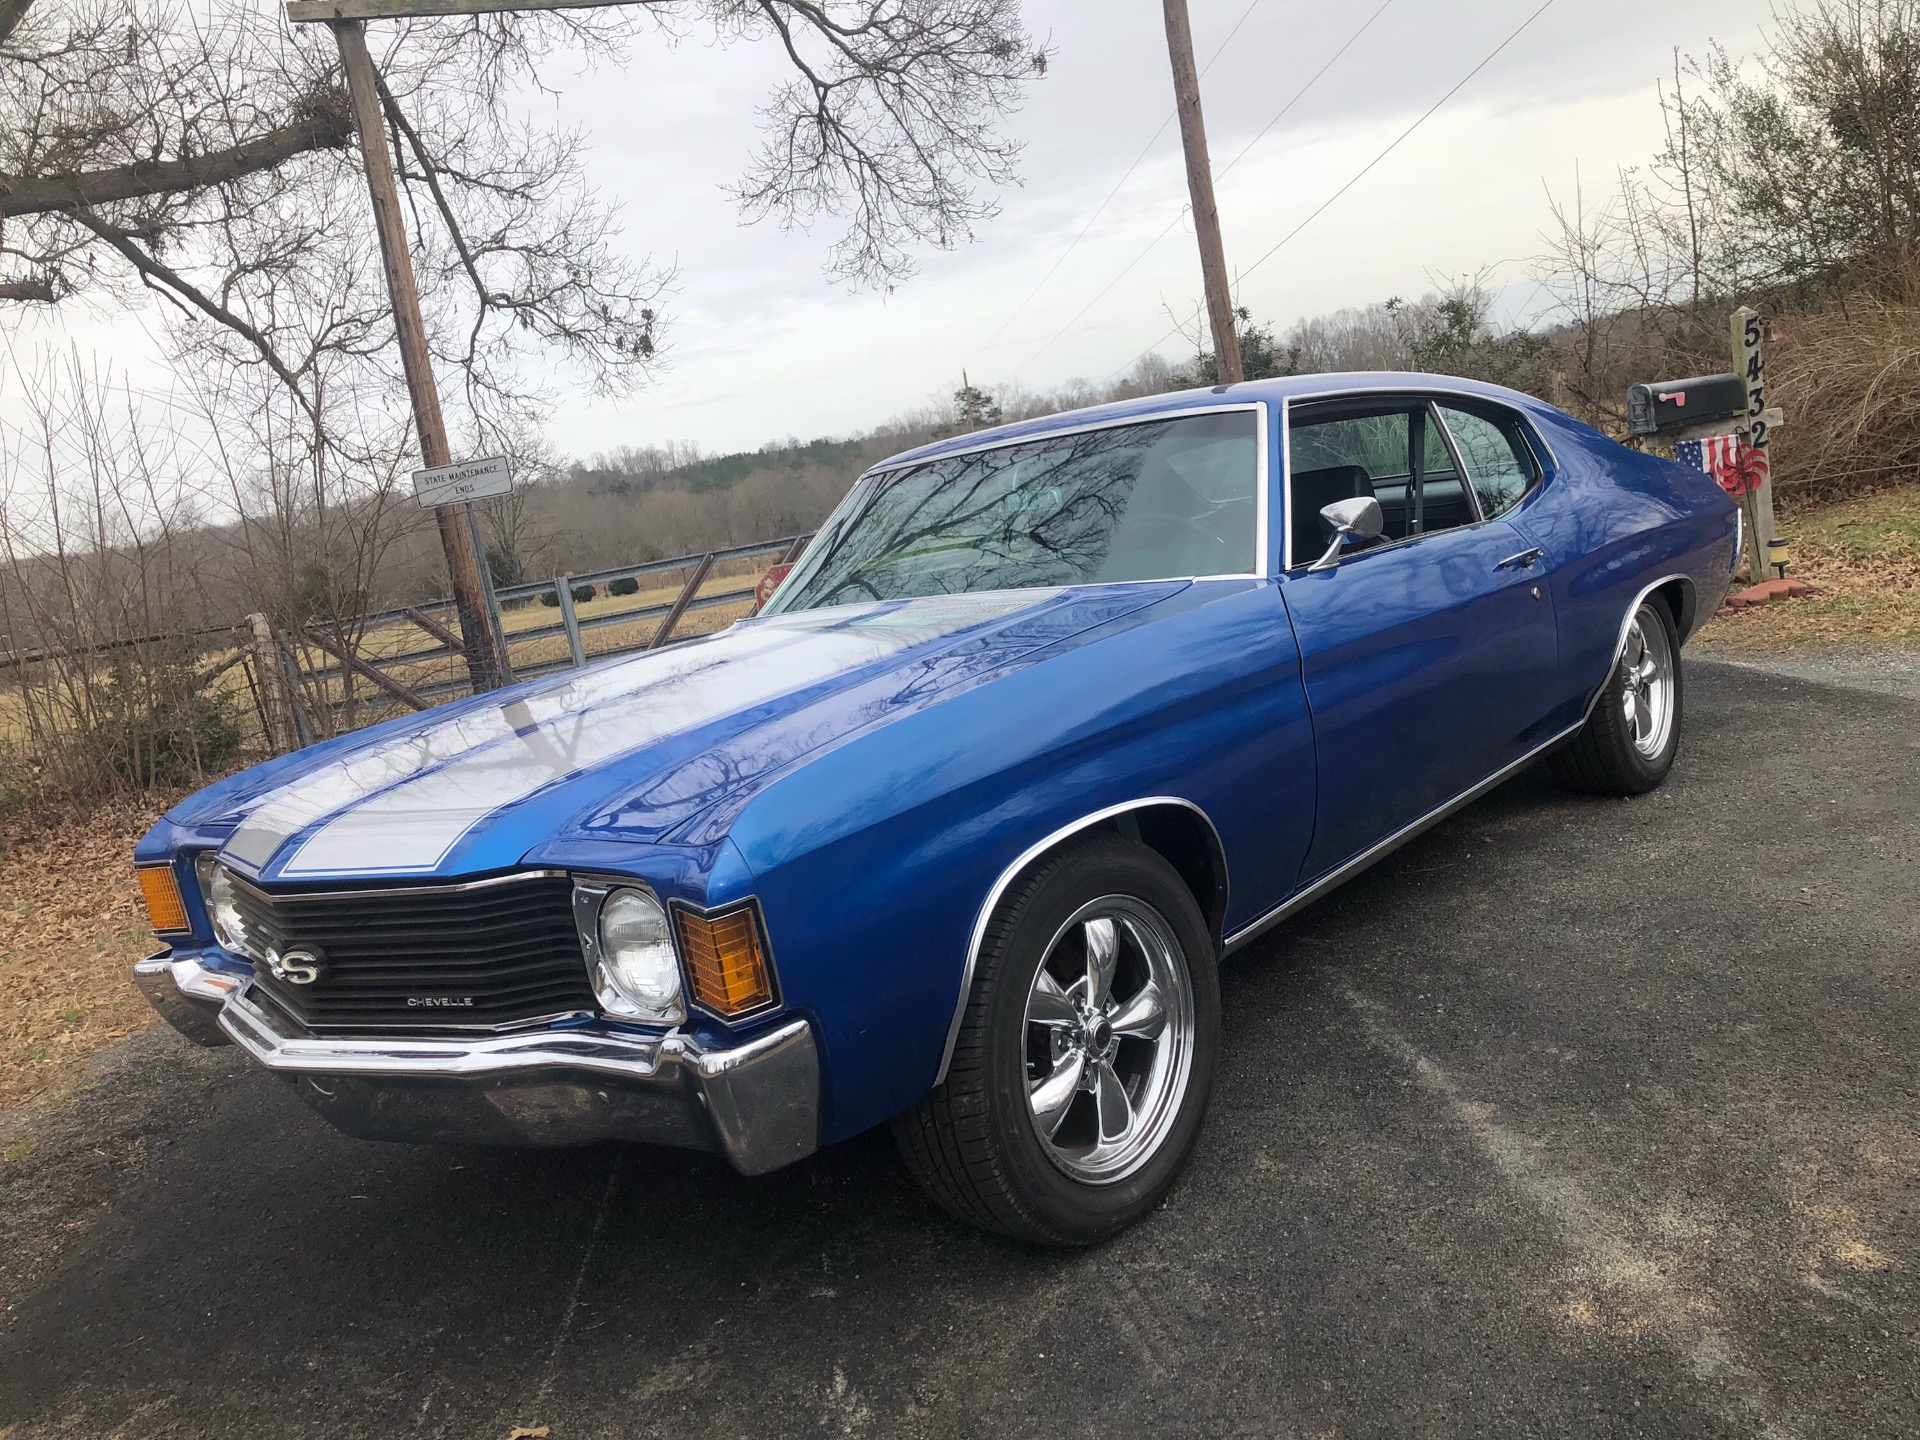 Photo 1972 Chevrolet Chevelle -FRAME OFF RESTORED 2017-SS GAUGES-AIR CONDITIONING-SOLID MUSCLE CAR-VIDEO